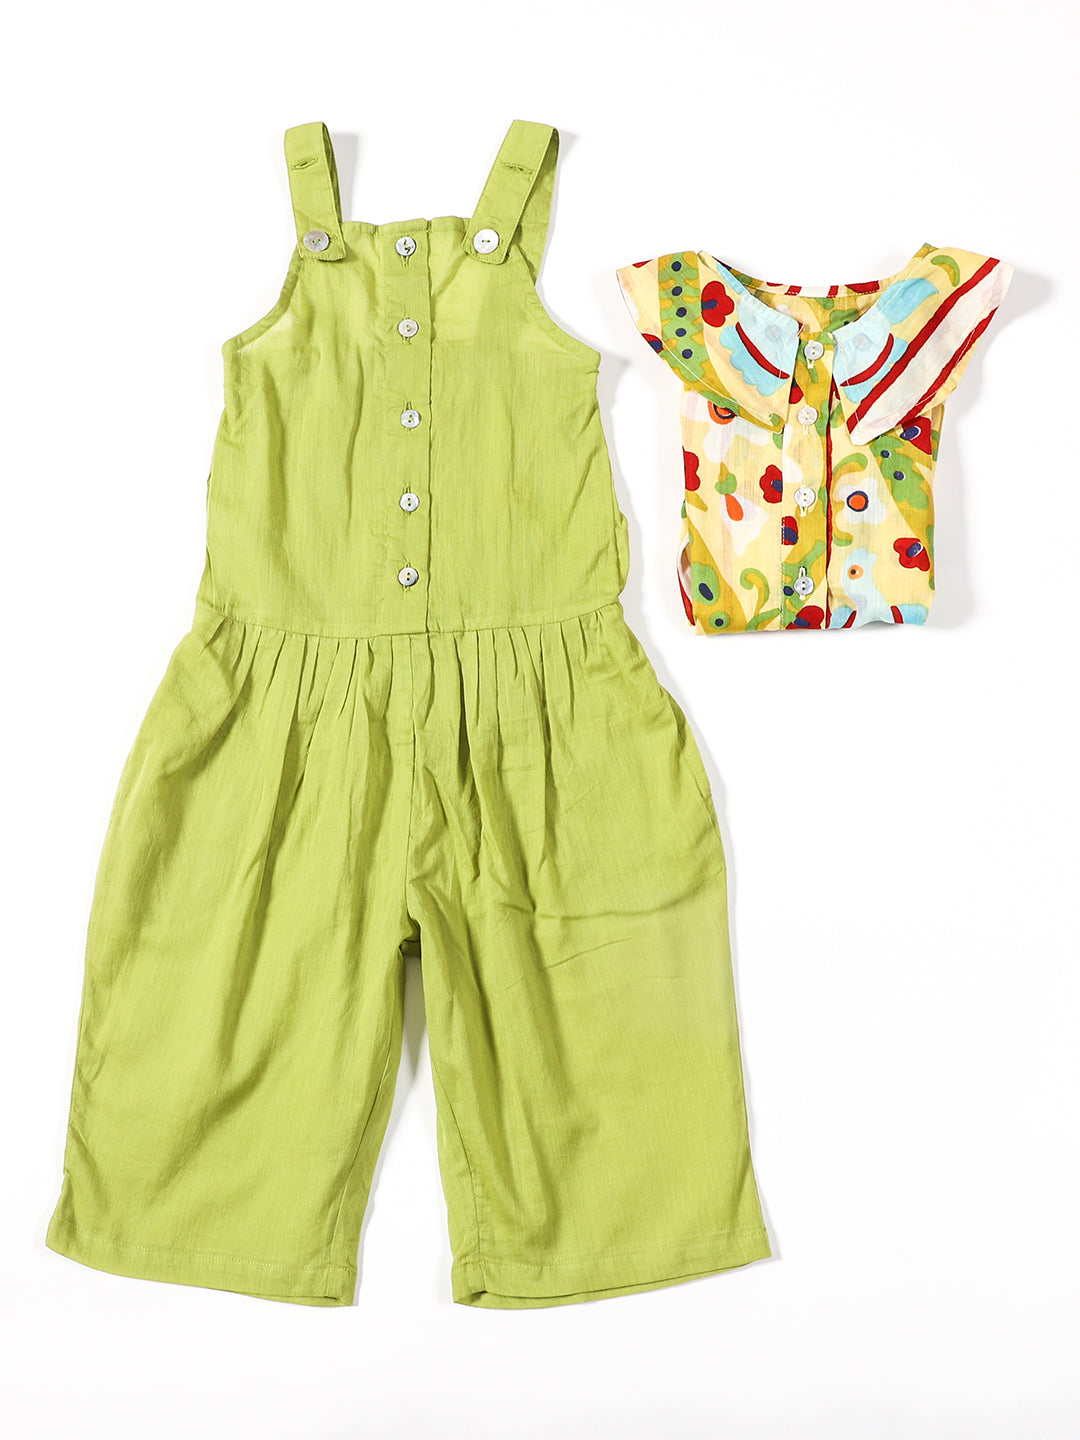 A SET OF SHIRT WITH PETERPAN COLLAR AND A SLEEVELESS JUMPSUIT